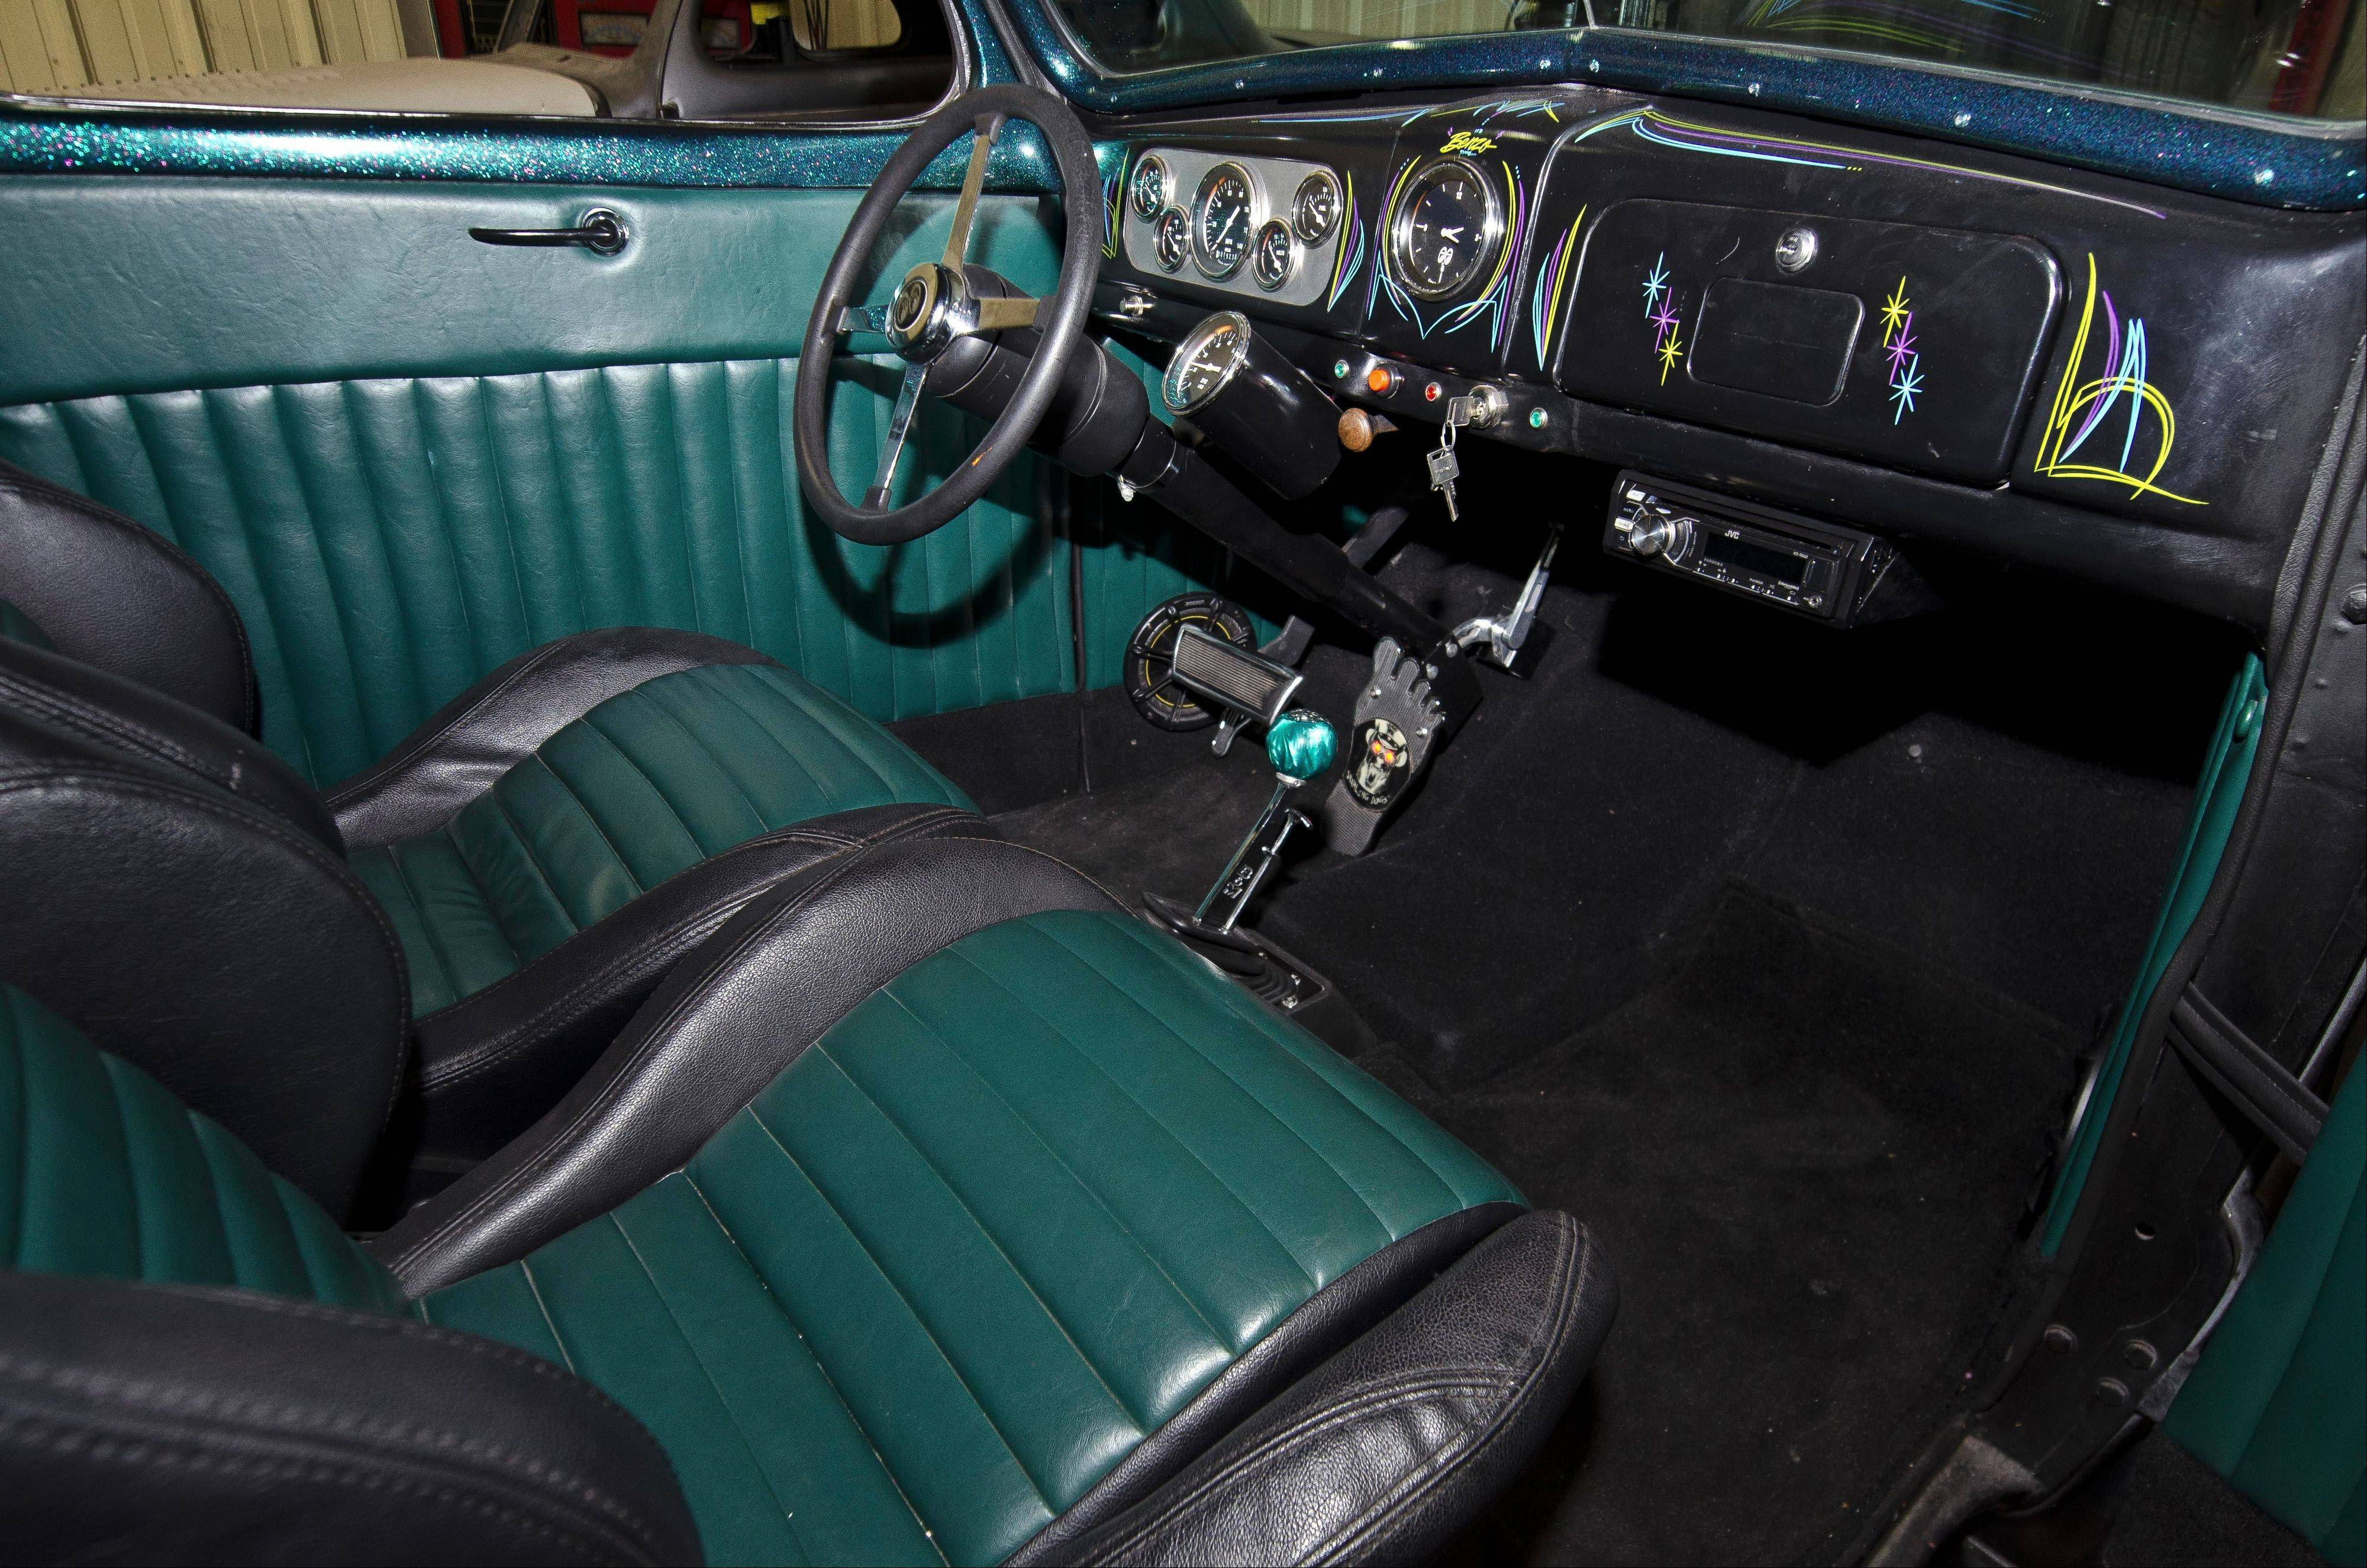 The green shift knob Ritthaler received as a gift became the inspiration for the interior restoration.